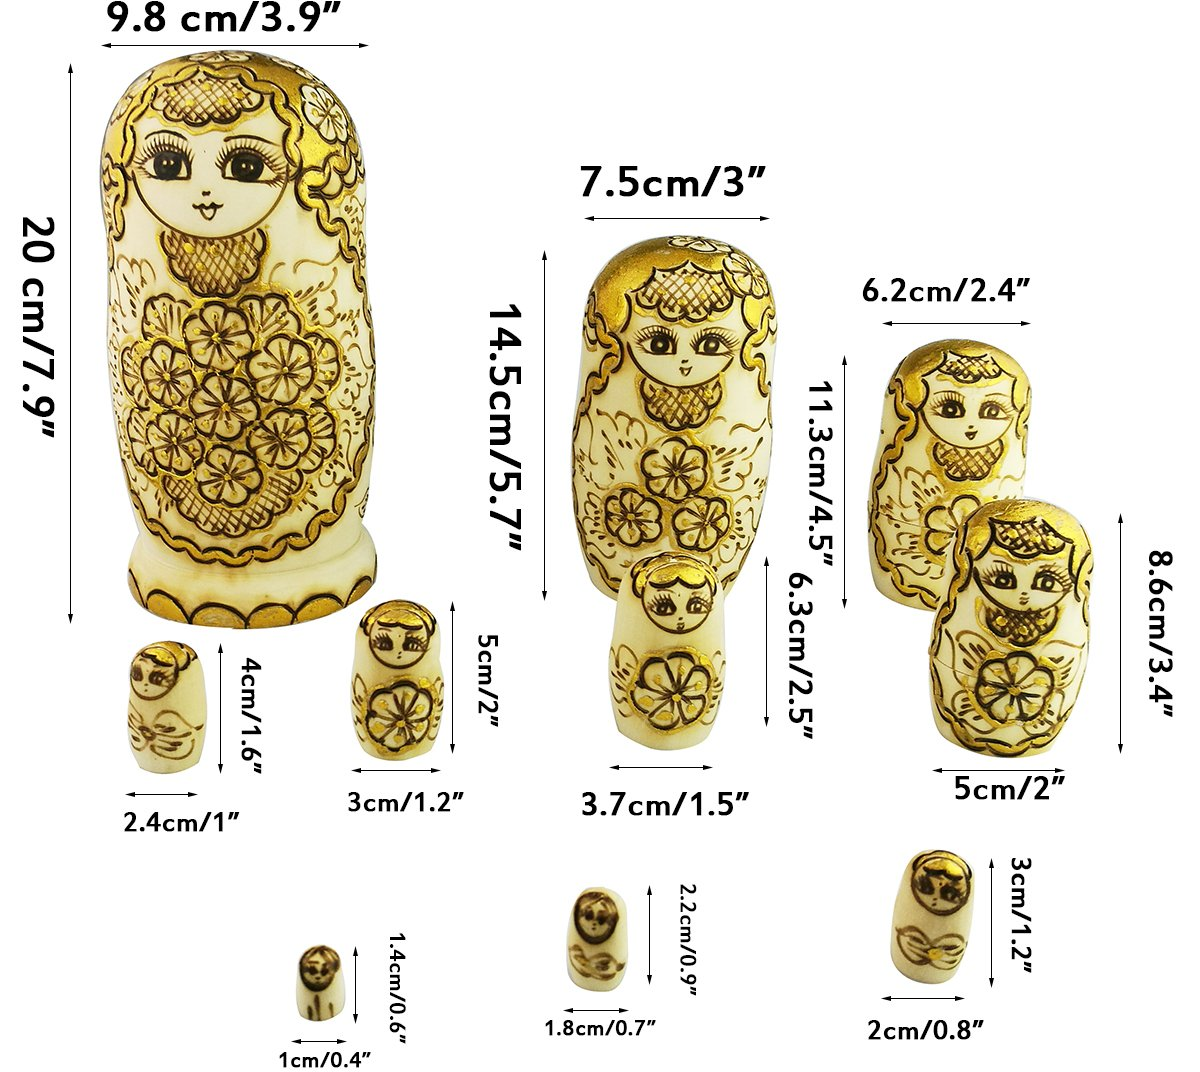 Winterworm Beautiful Attractive Adorable Exotic Glossy Yellow Gold Flower Pattern Handmade Wooden Russian Nesting Dolls Matryoshka Dolls Set 10 Pieces for Kids Toy Birthday by Winterworm (Image #4)